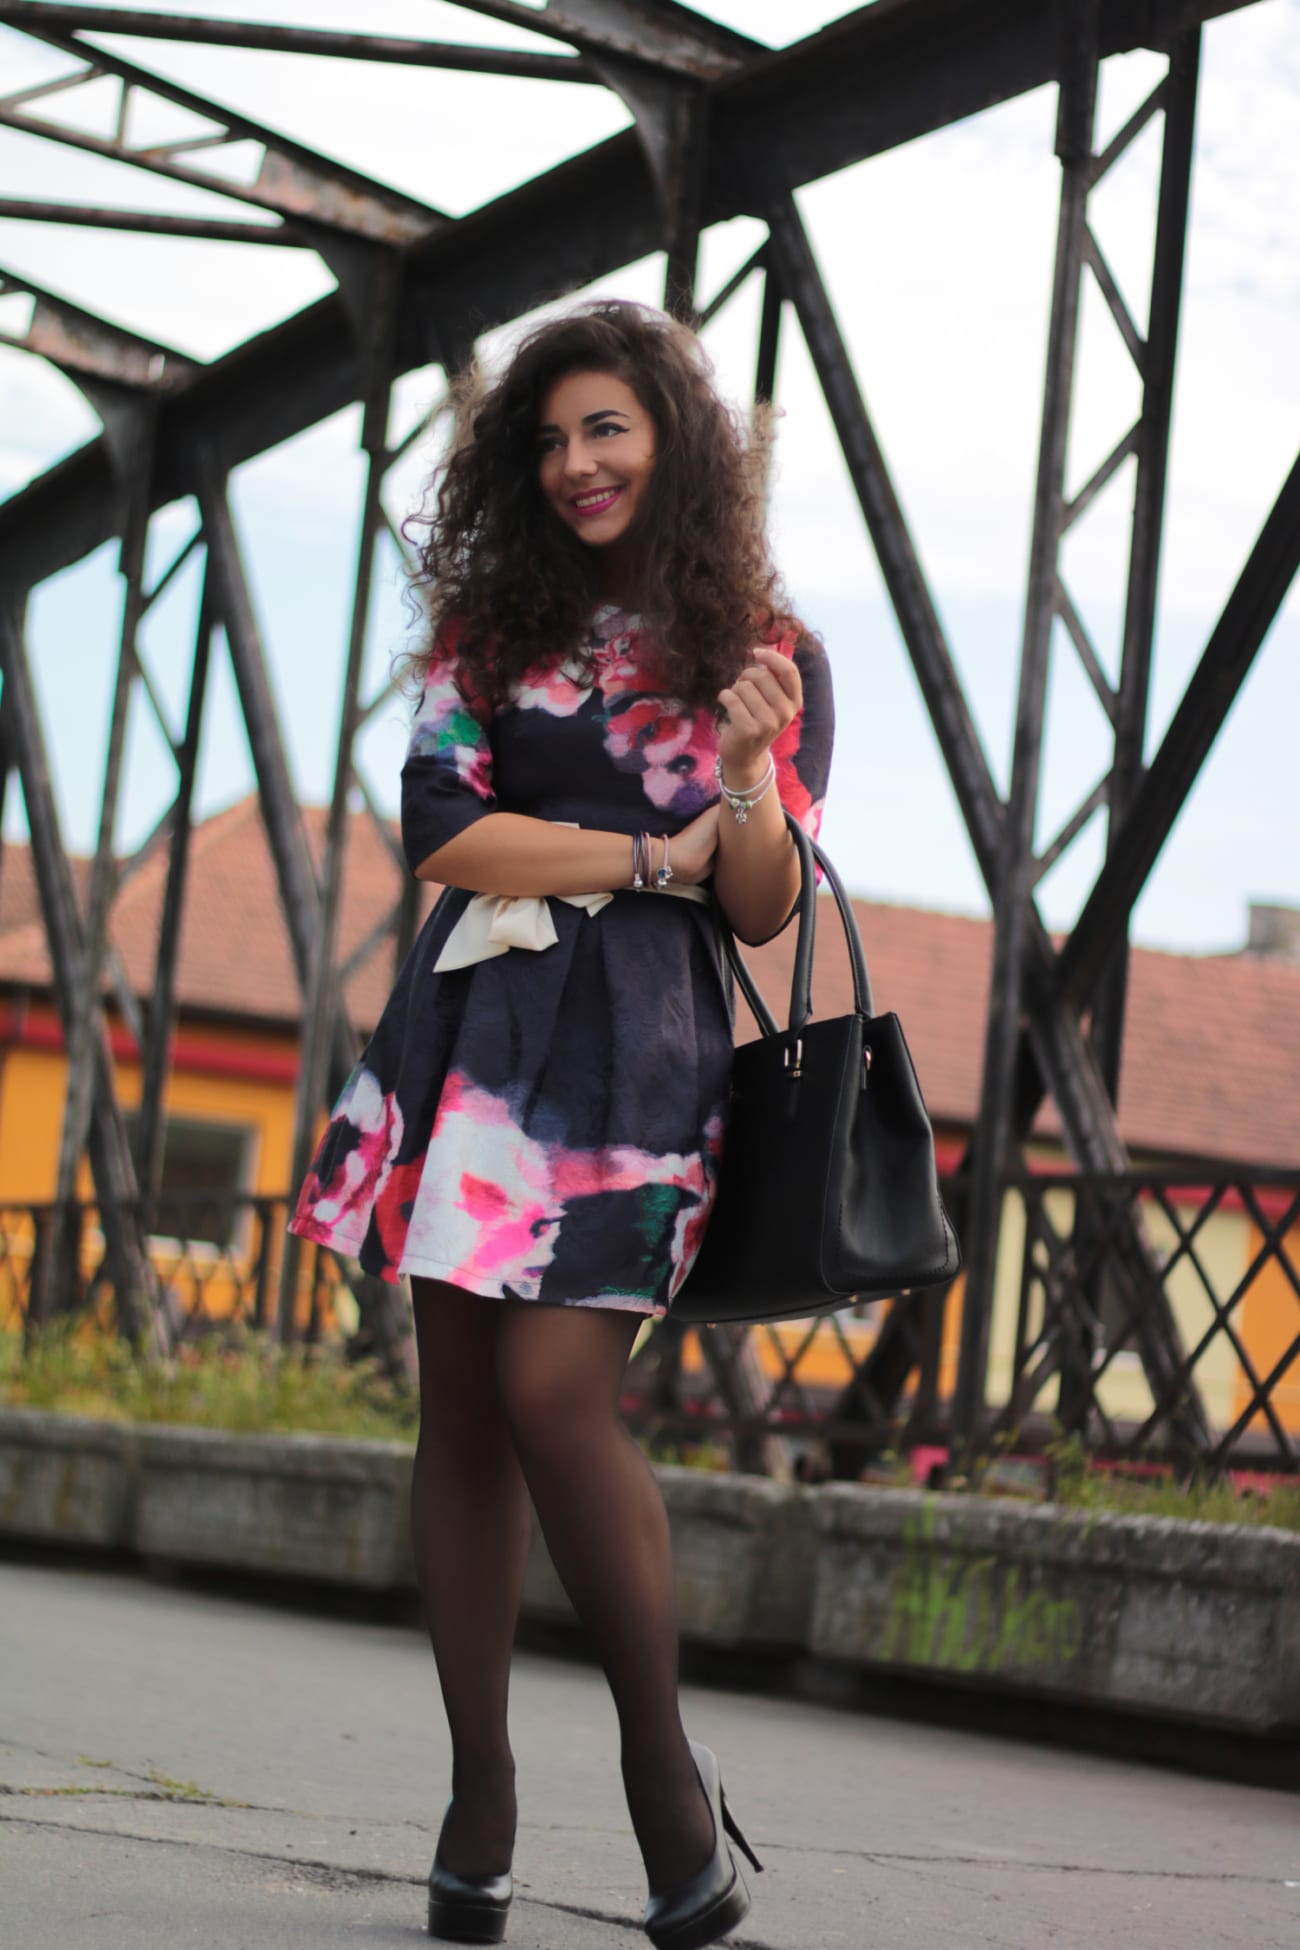 top-fashion-pareri-roxi-rose-timisoara-fashion-blogger-rochia-cu-flori-floral-dress-review-favorite-fashion-item-and-why-clothing-piece curly blogger